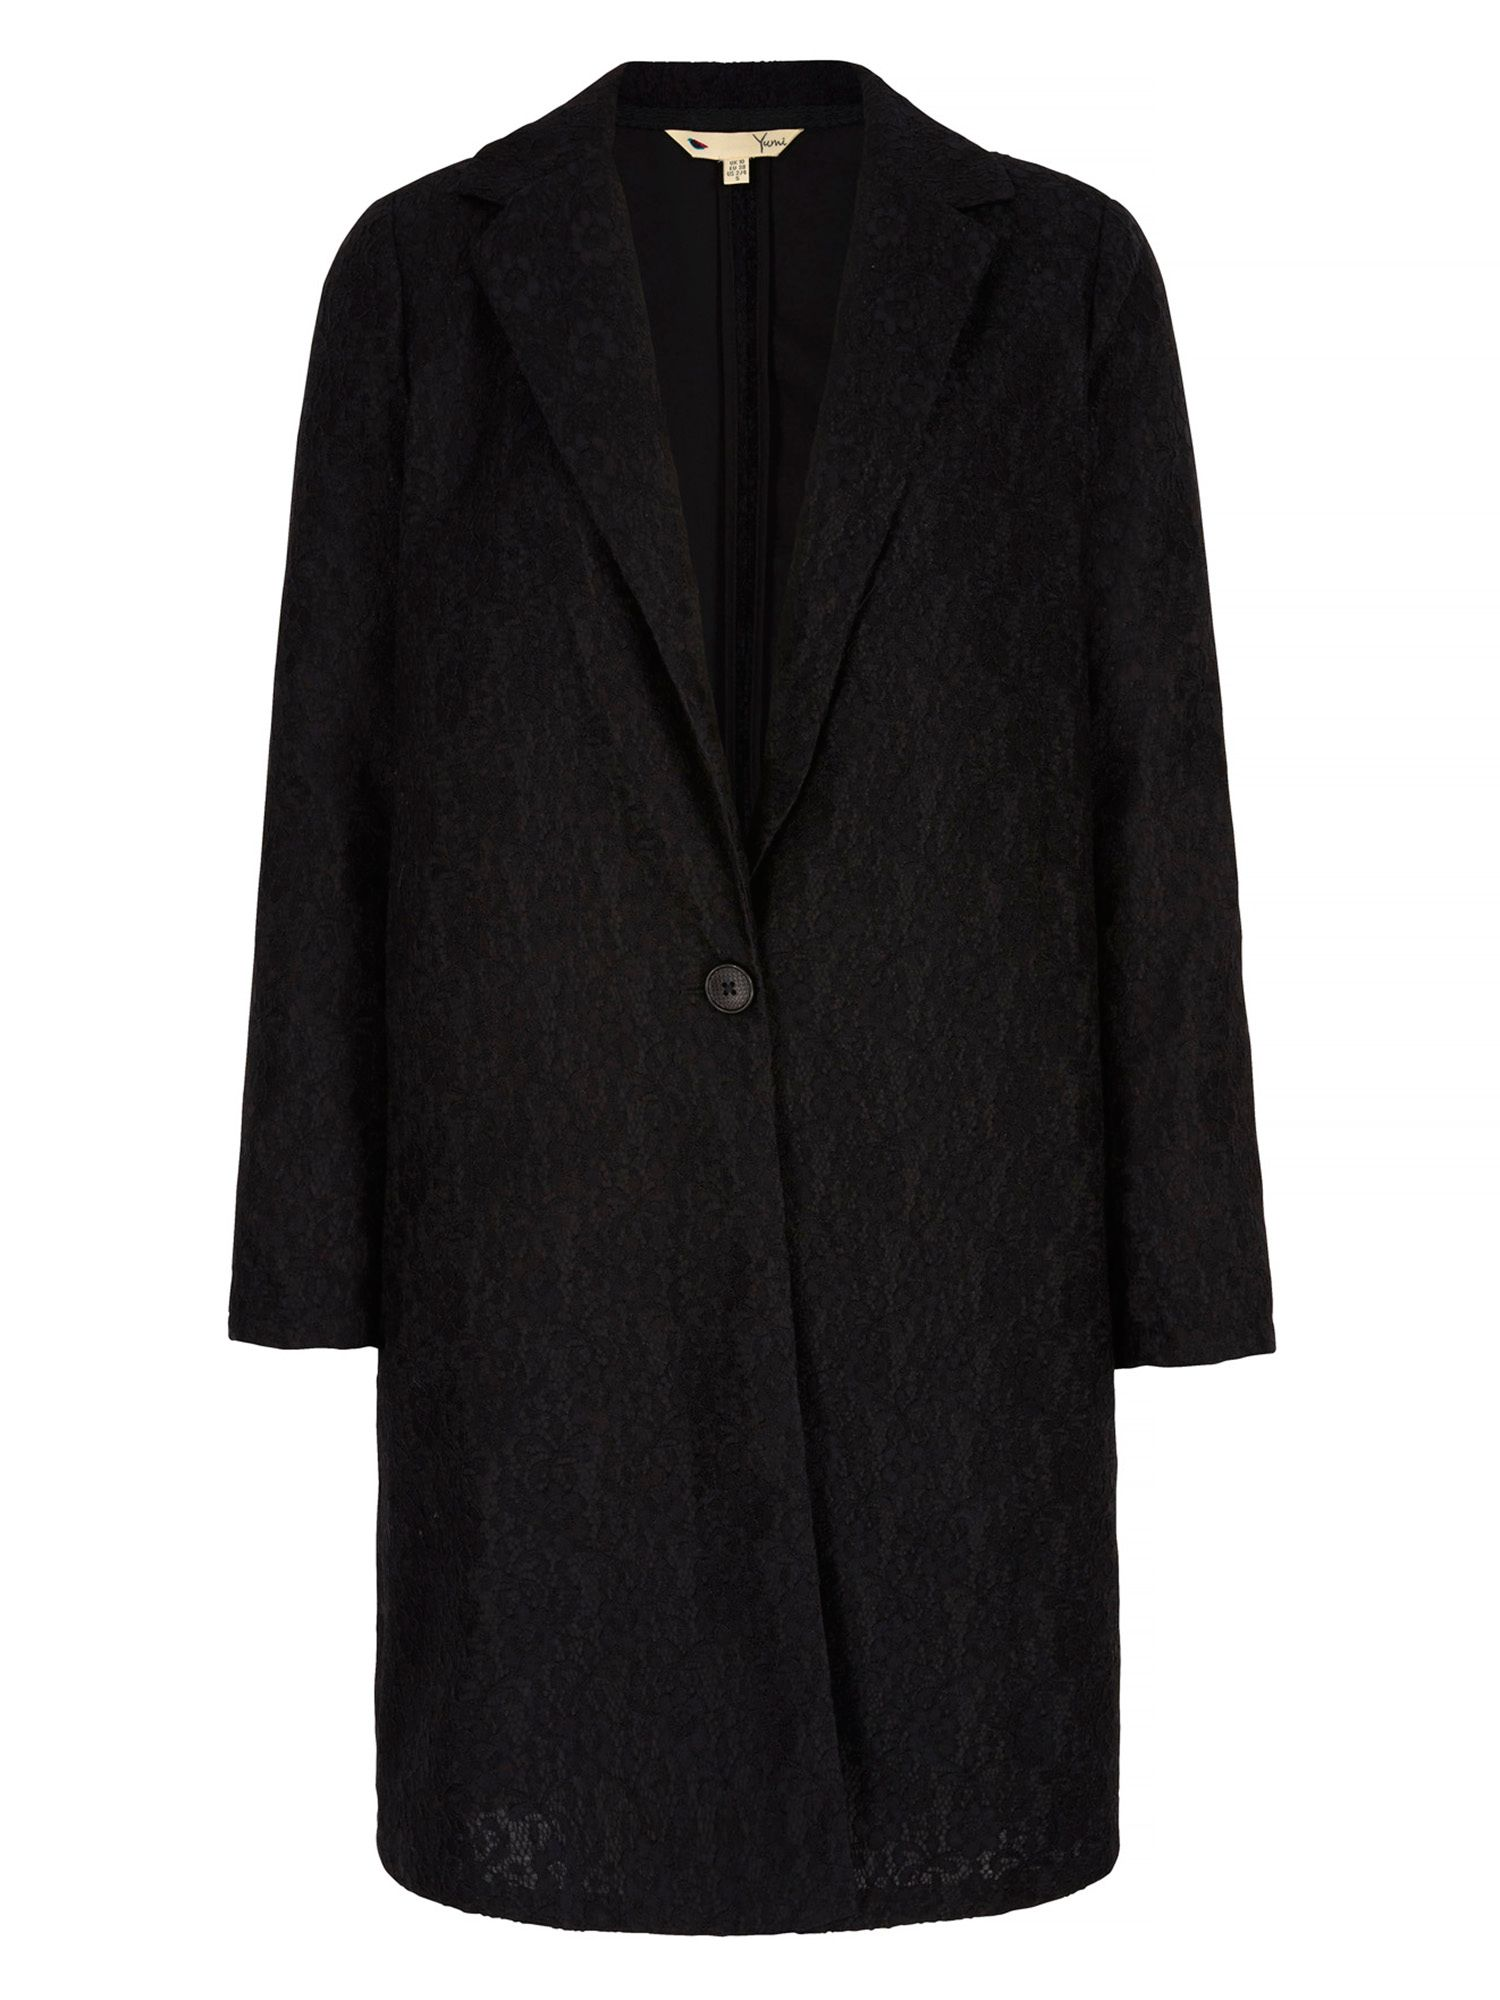 Yumi Lace Tailored Jacket, Black